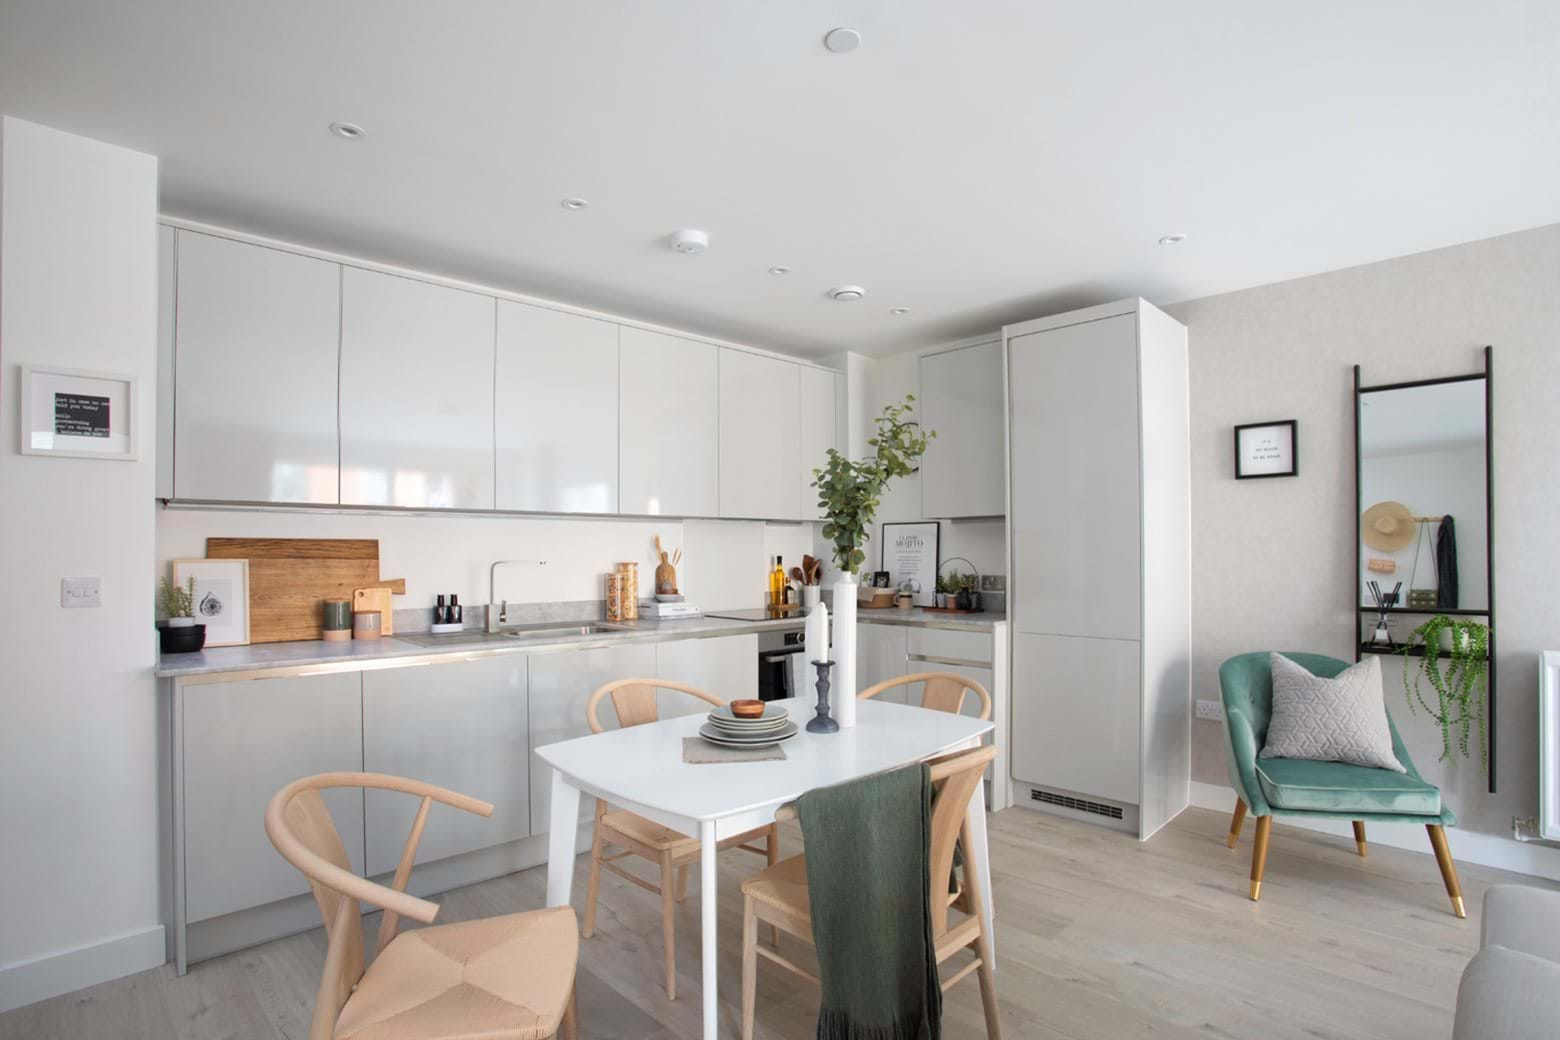 Colindale Gardens - Shared Ownership kitchen